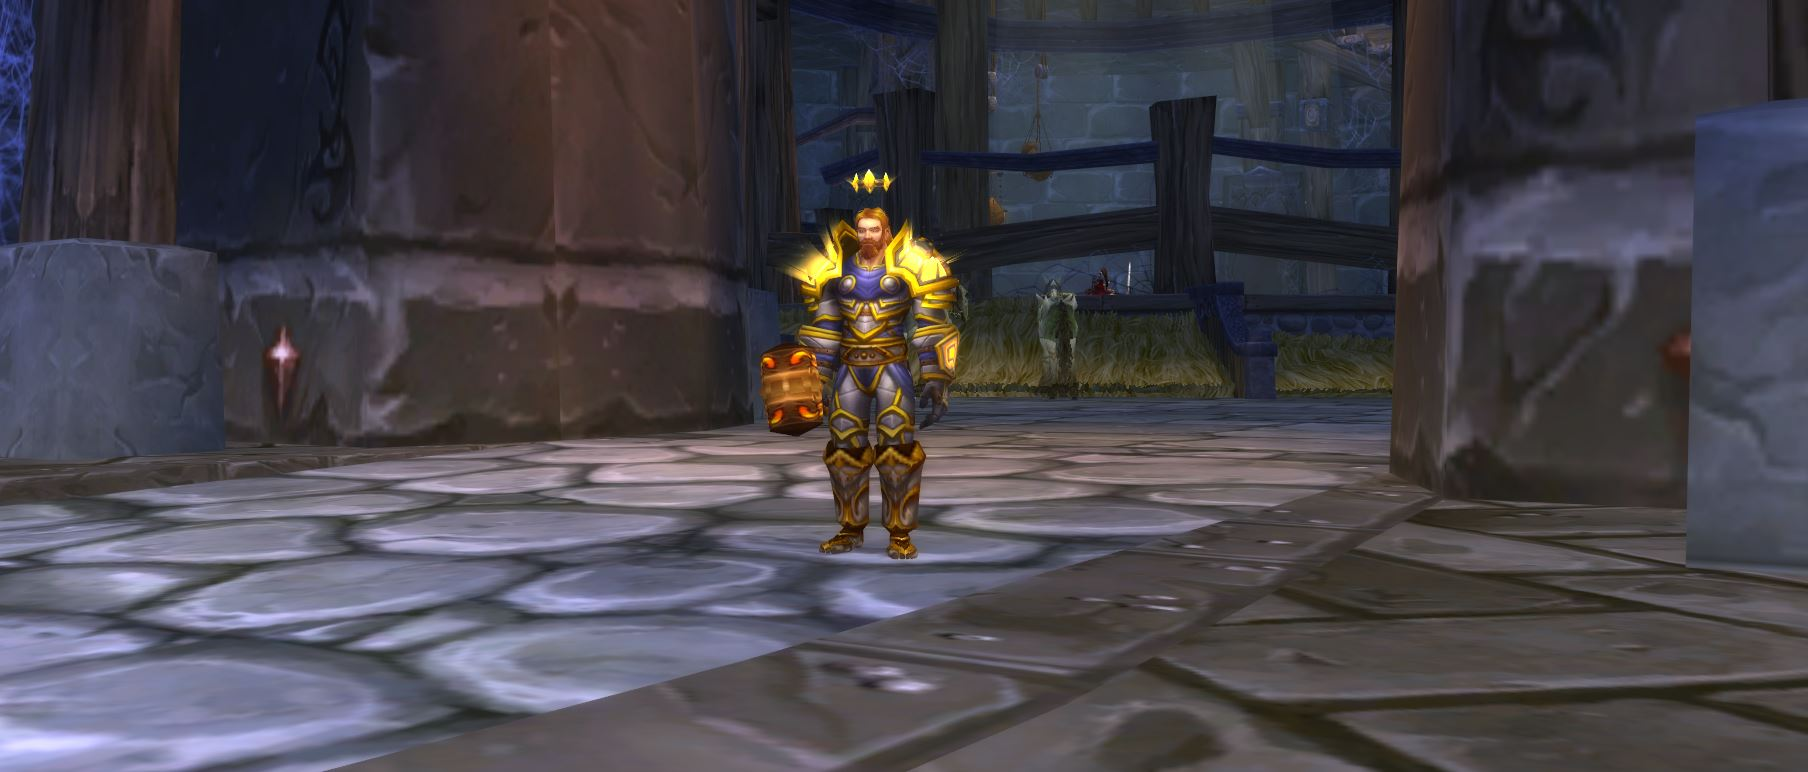 tbc classic pve retribution paladin guide burning crusade classic